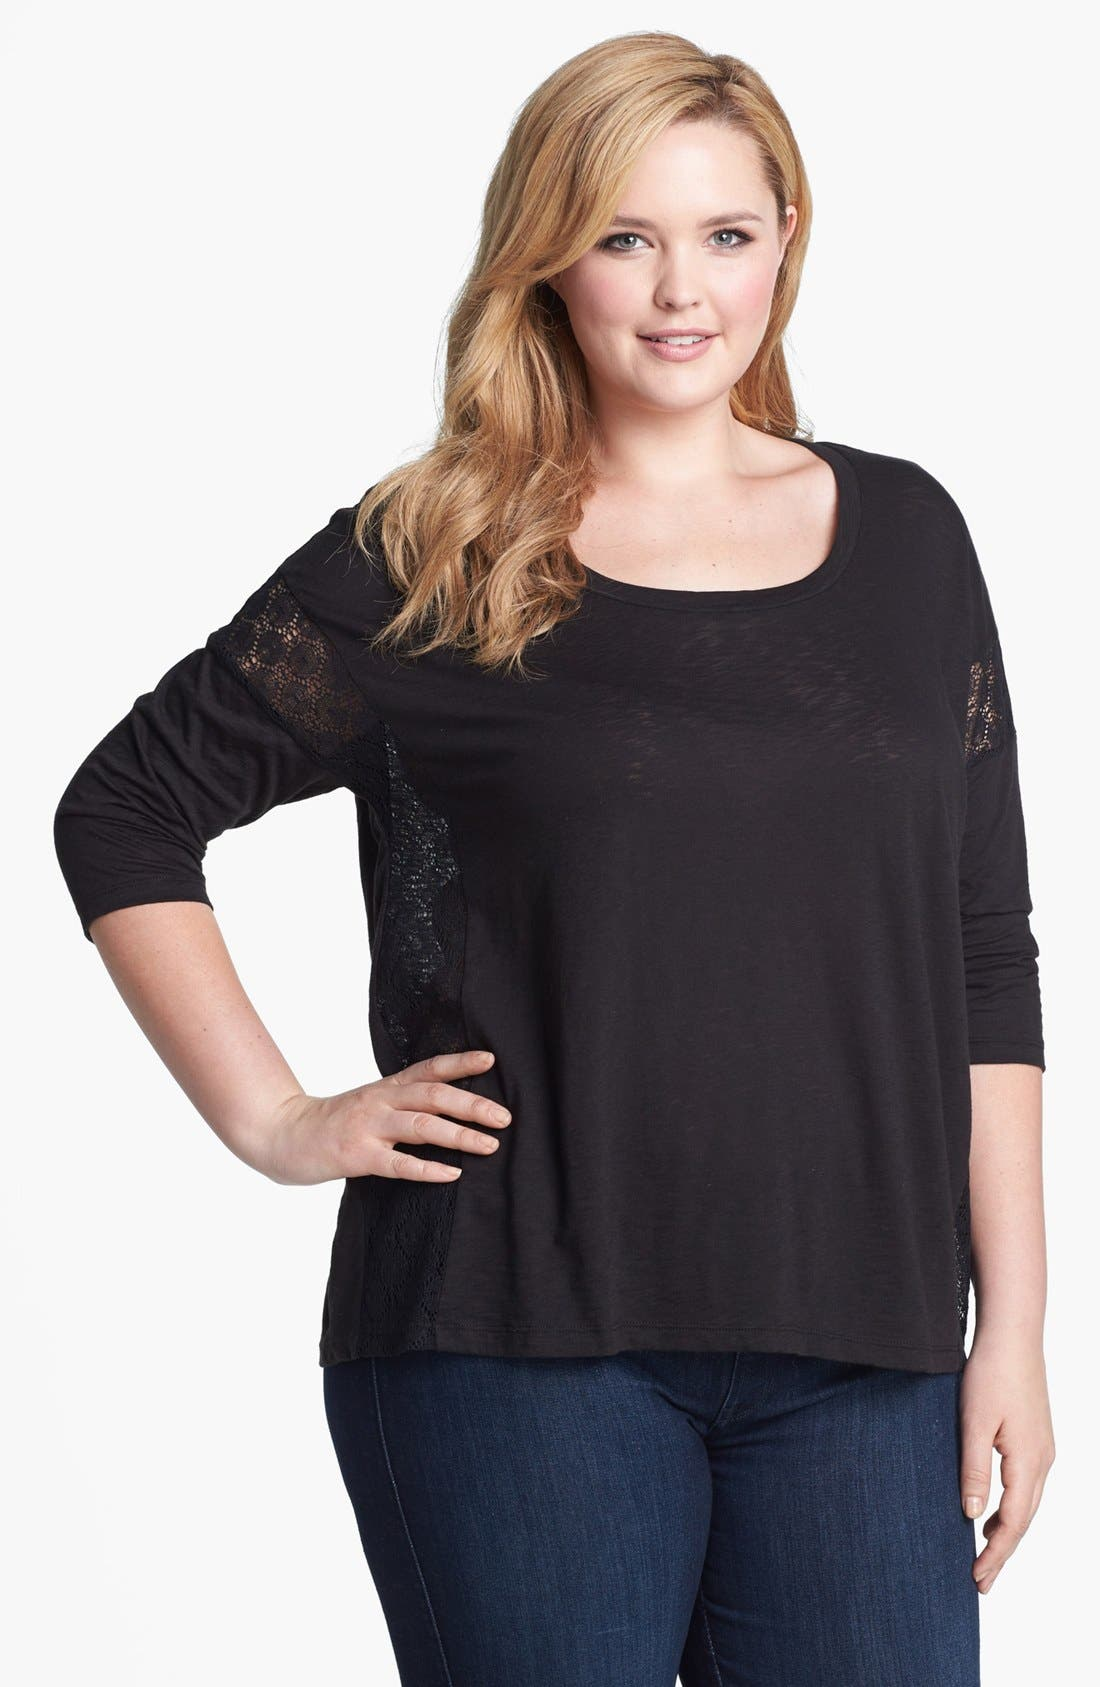 Alternate Image 1 Selected - Splendid 'Chic' Cotton Tee (Plus Size)